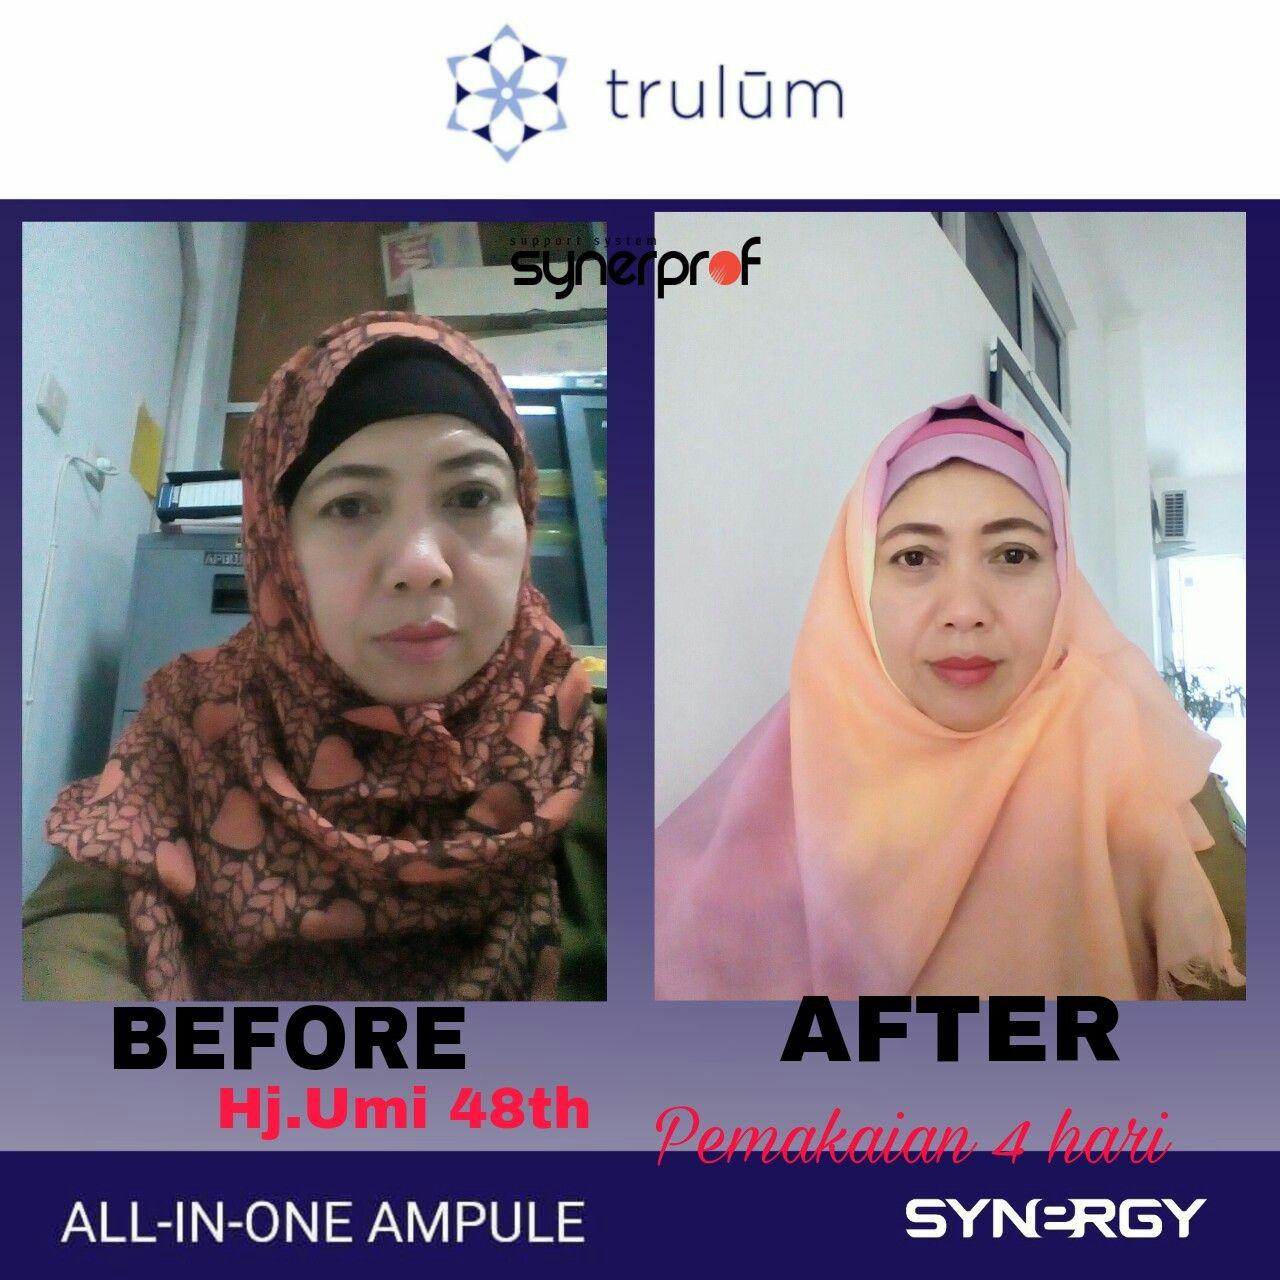 Klinik Kecantikan Trulum All In One Di Fadoro You, Gunungsitoli Alo'Oa WA: 08112338376